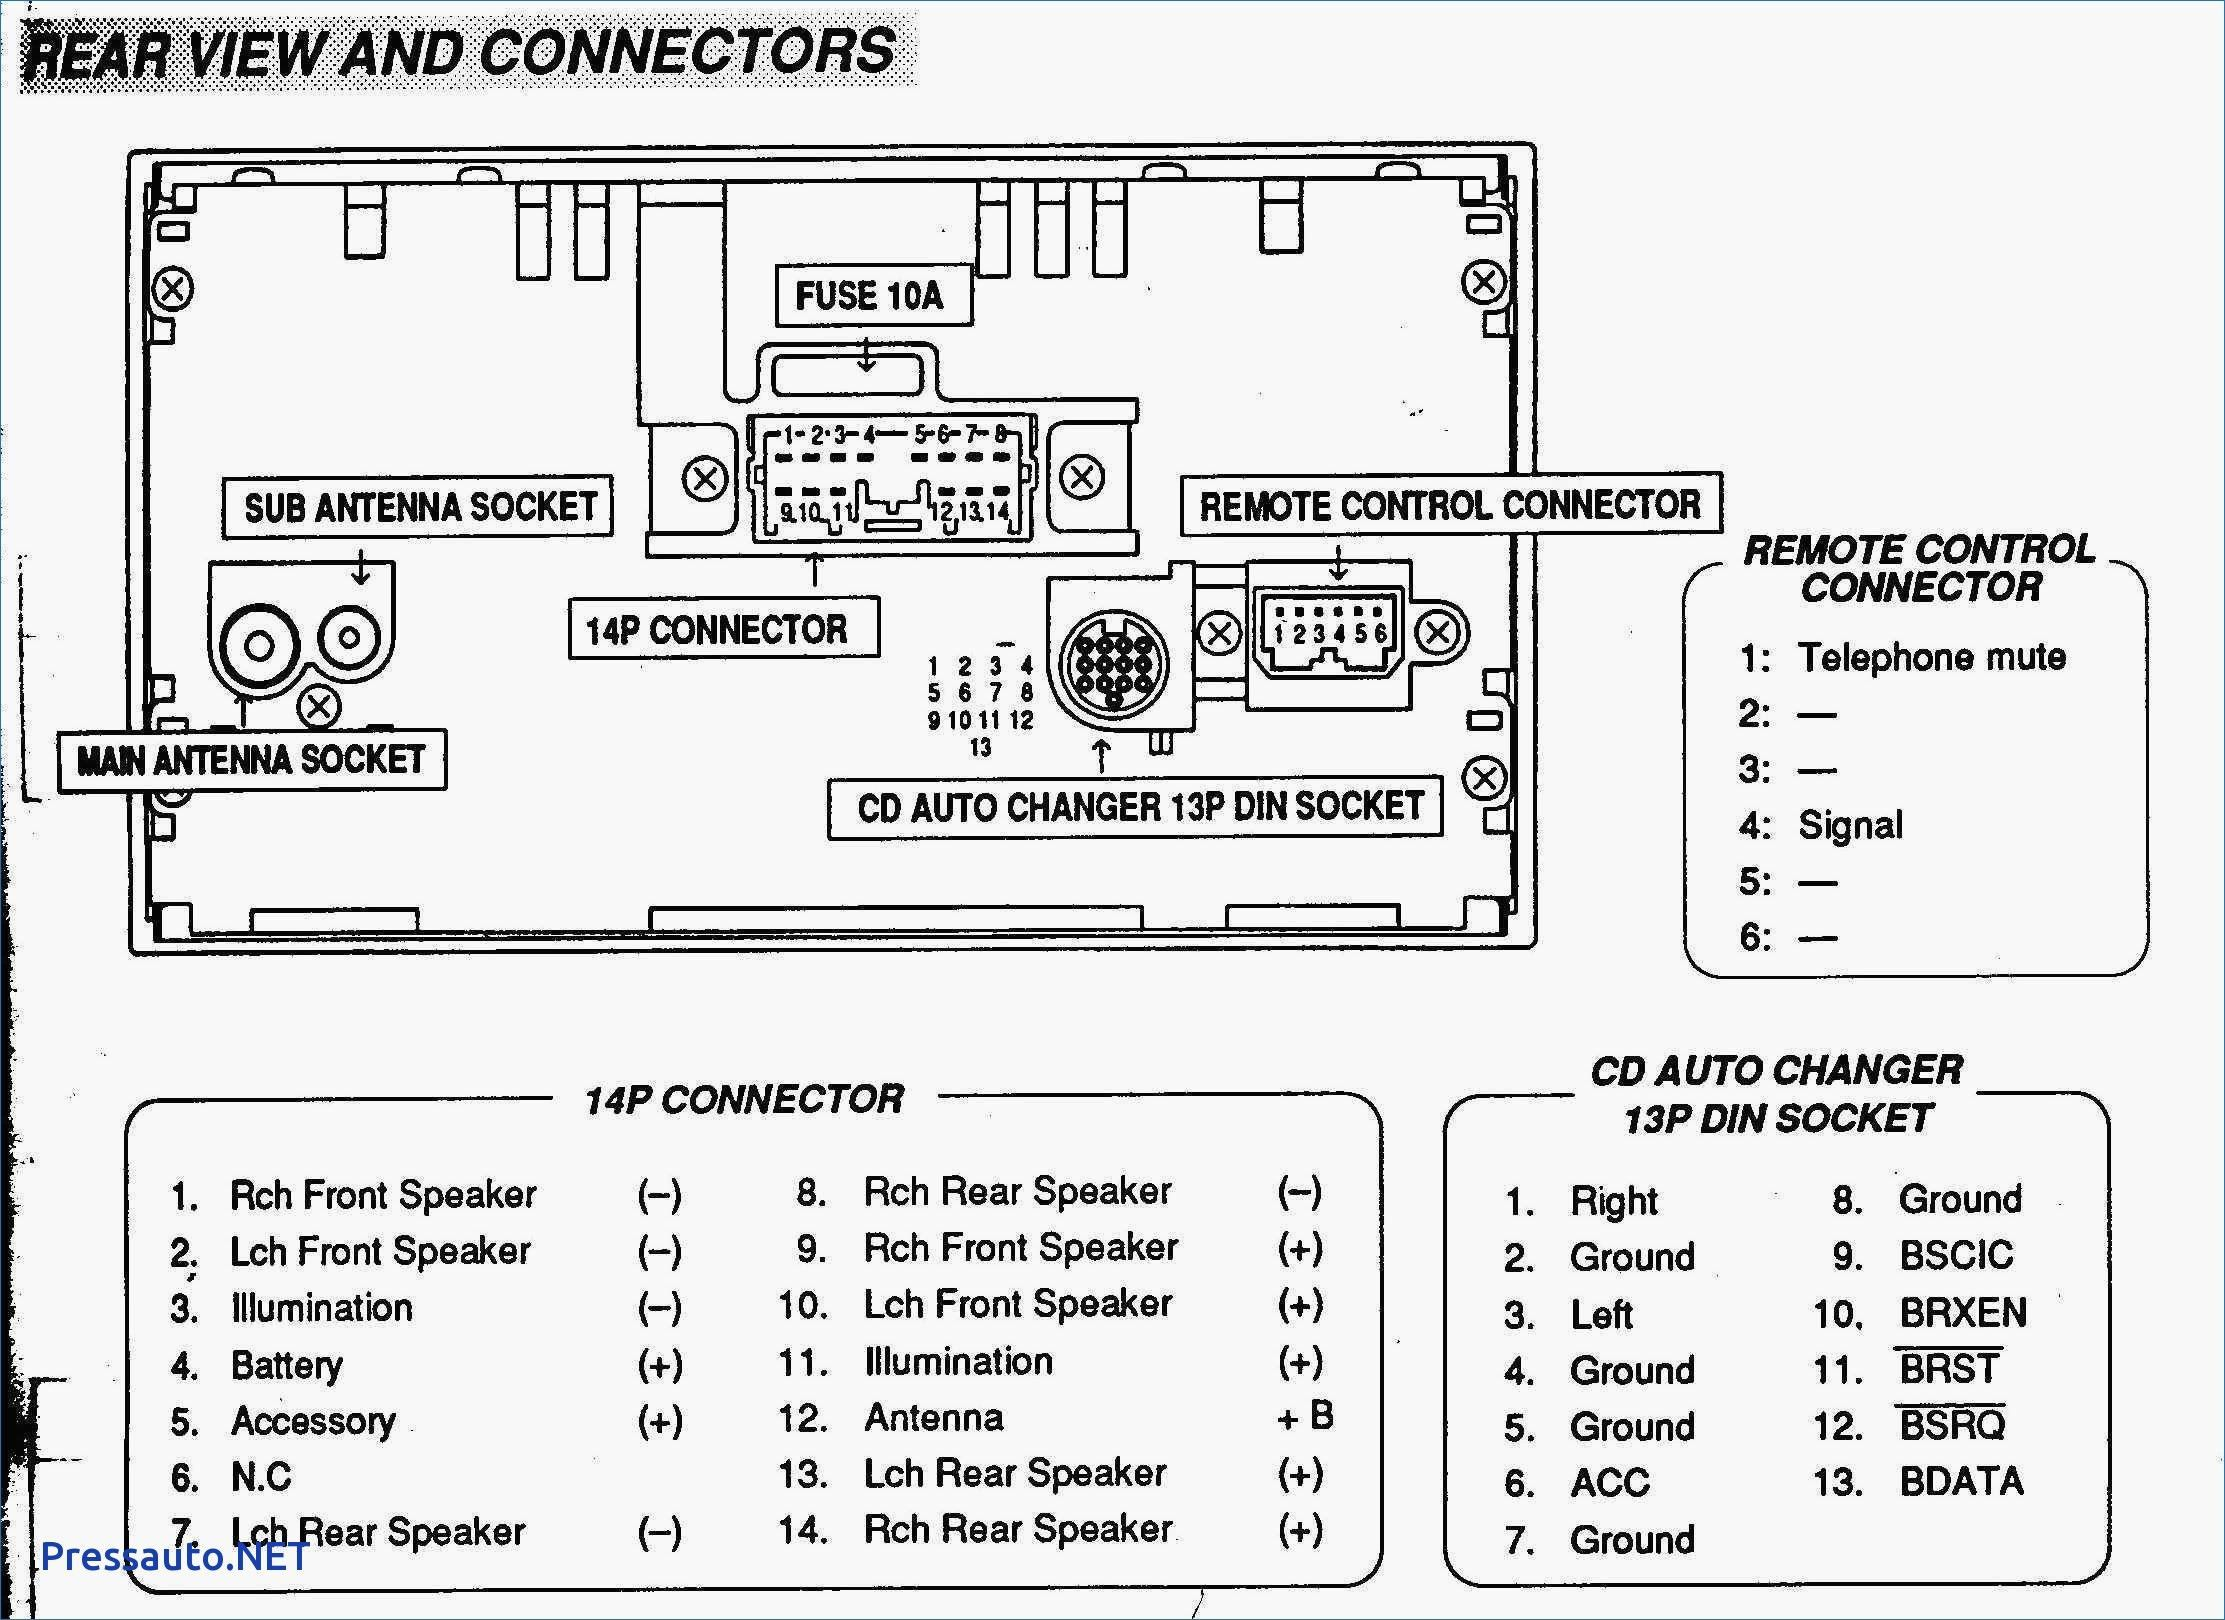 2003 Ford Expedition Radio Dvd Wiring Diagram In 2020 Mitsubishi Cars Electrical Wiring Diagram Car Stereo